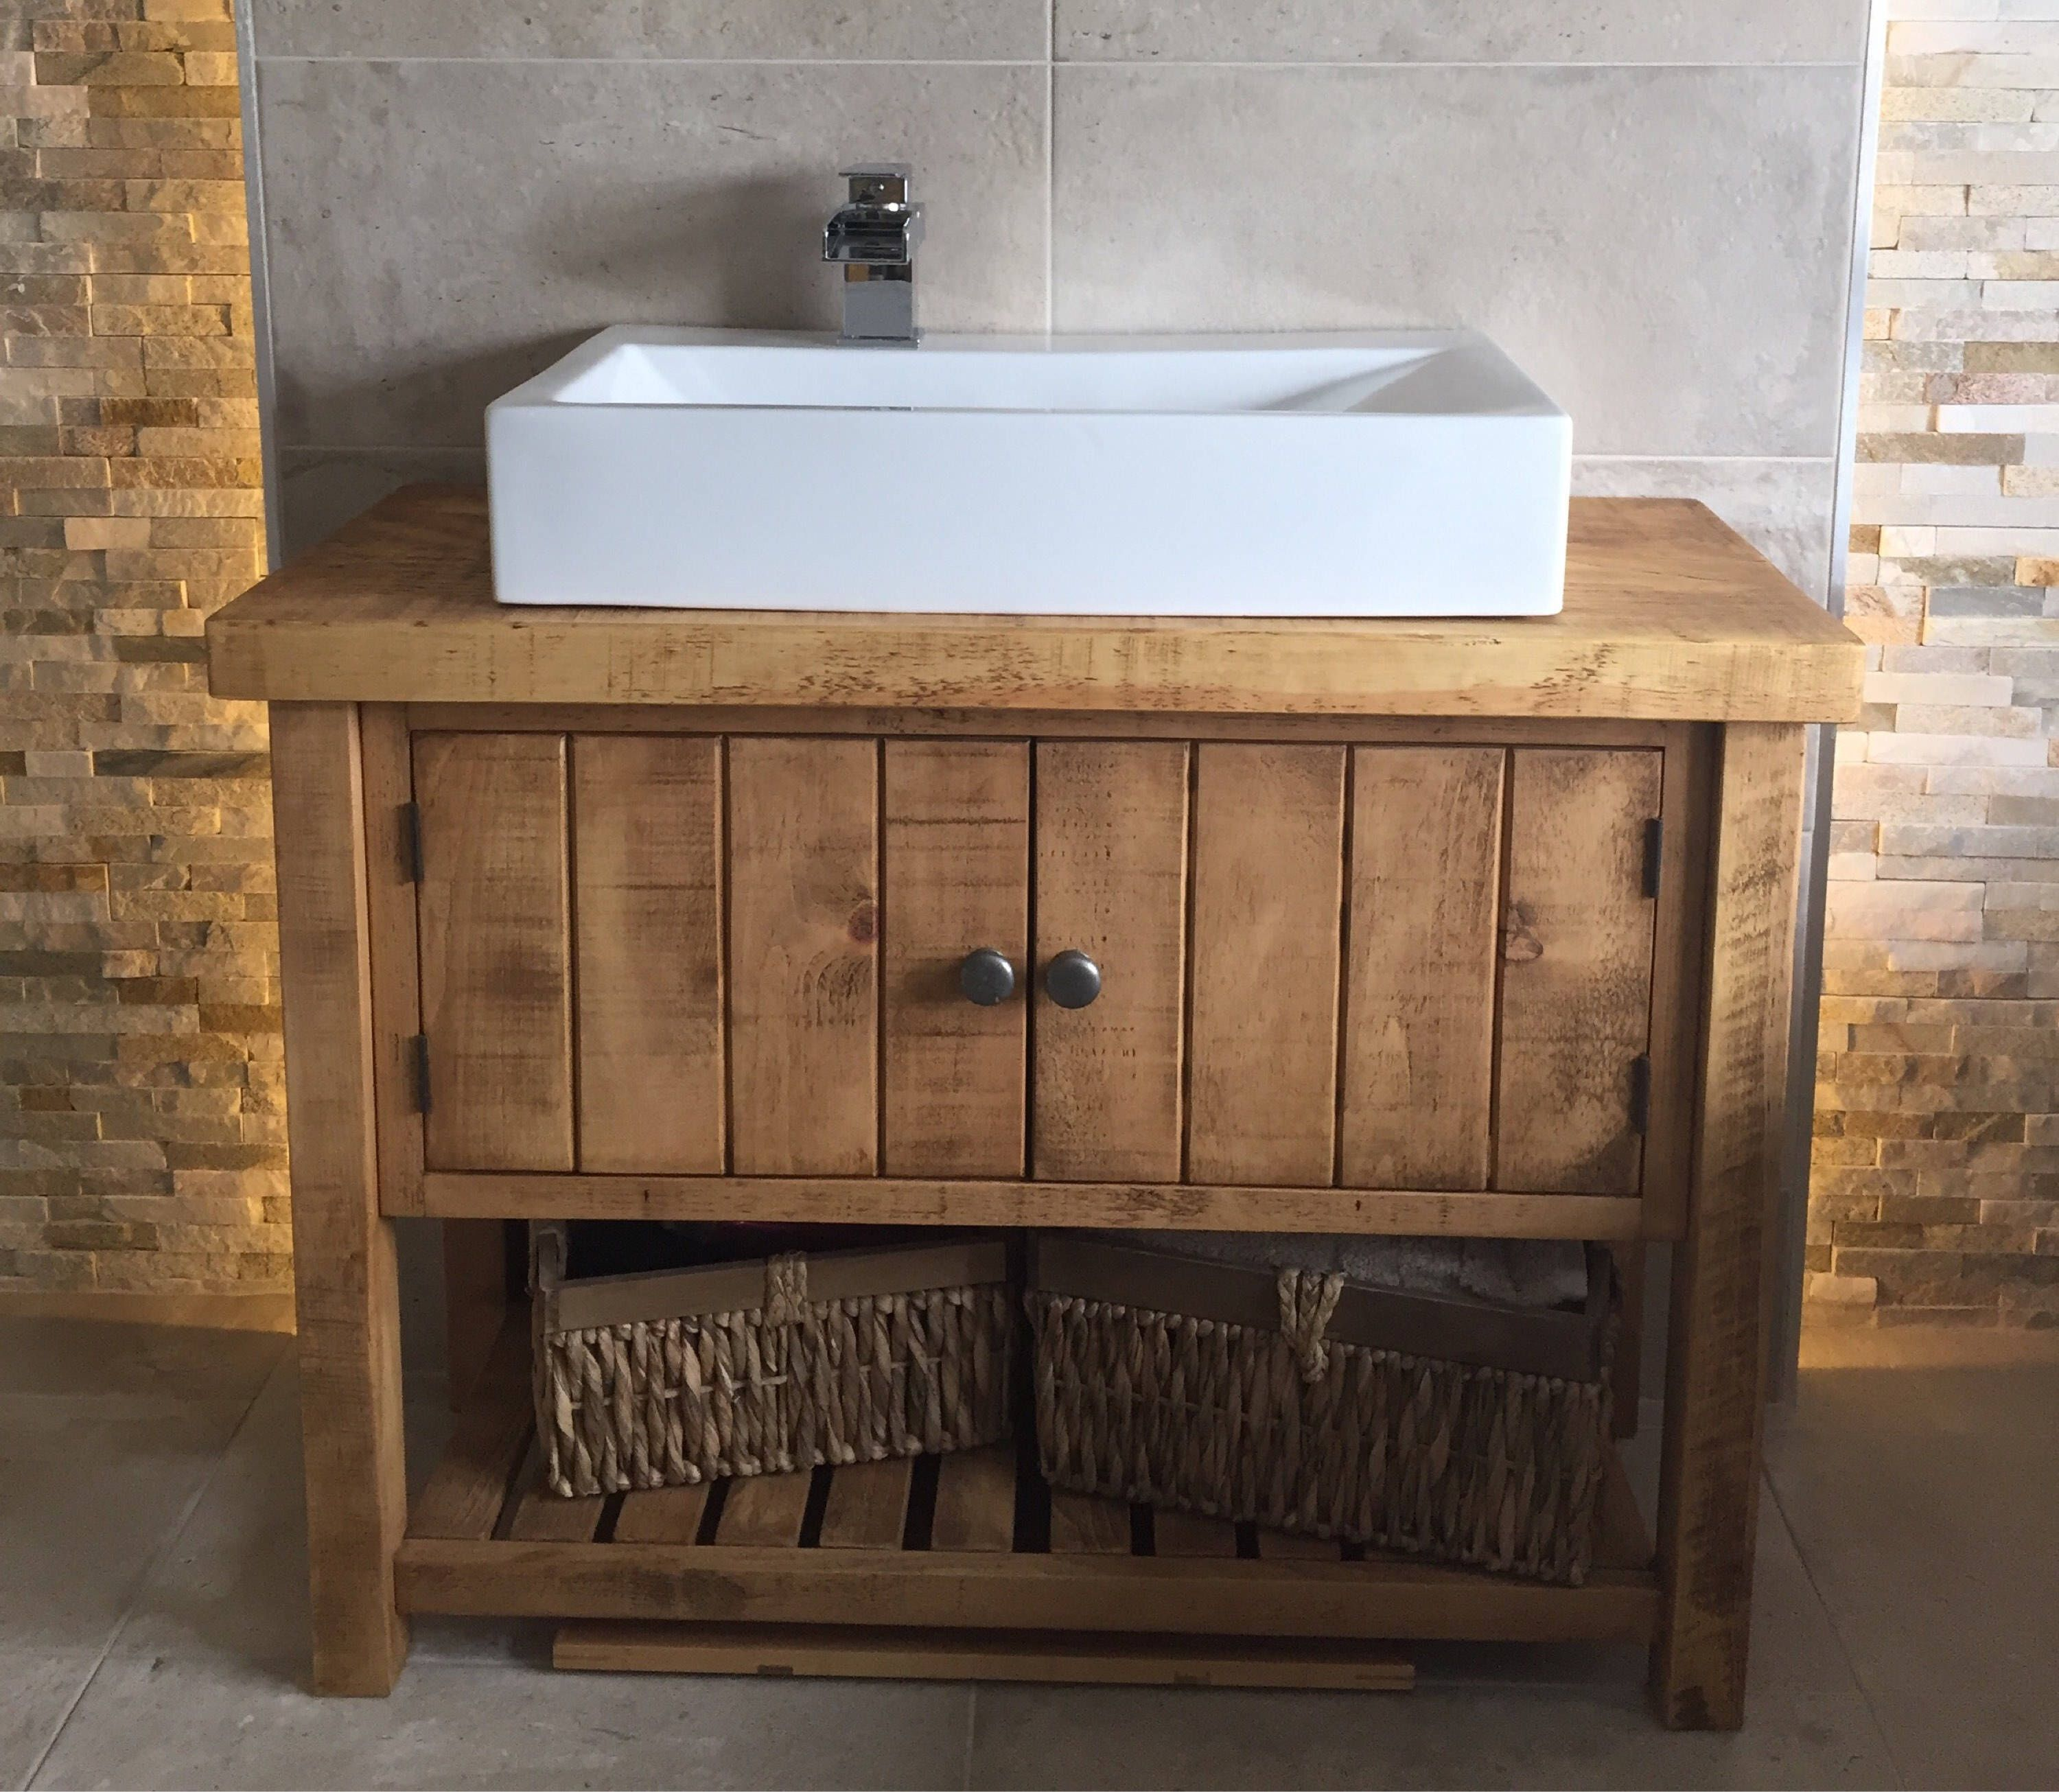 Rustic Chunky Solid Wood Bathroom Sink Vanity Unit Handmade To Order By Rawfurnitureuk On